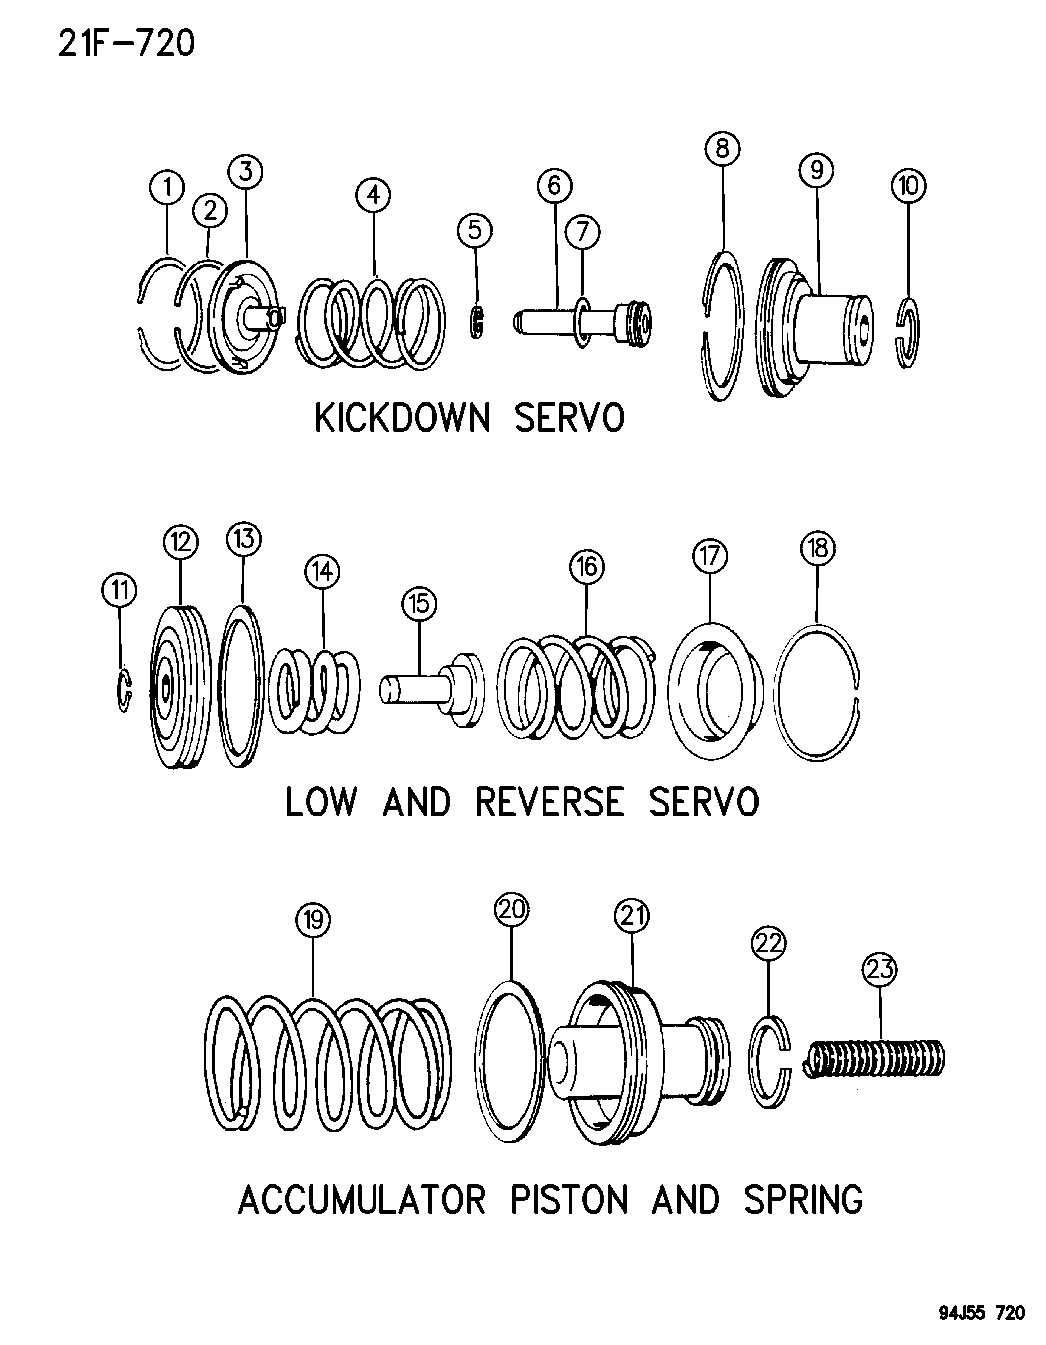 96 Ford F250 4x4 Front Axle Diagram furthermore Harley 45 Transmission Schematic further P s hose as well Drawings exploded views also Ford Fmx Transmission Diagram. on ford mustang engine rebuild kit